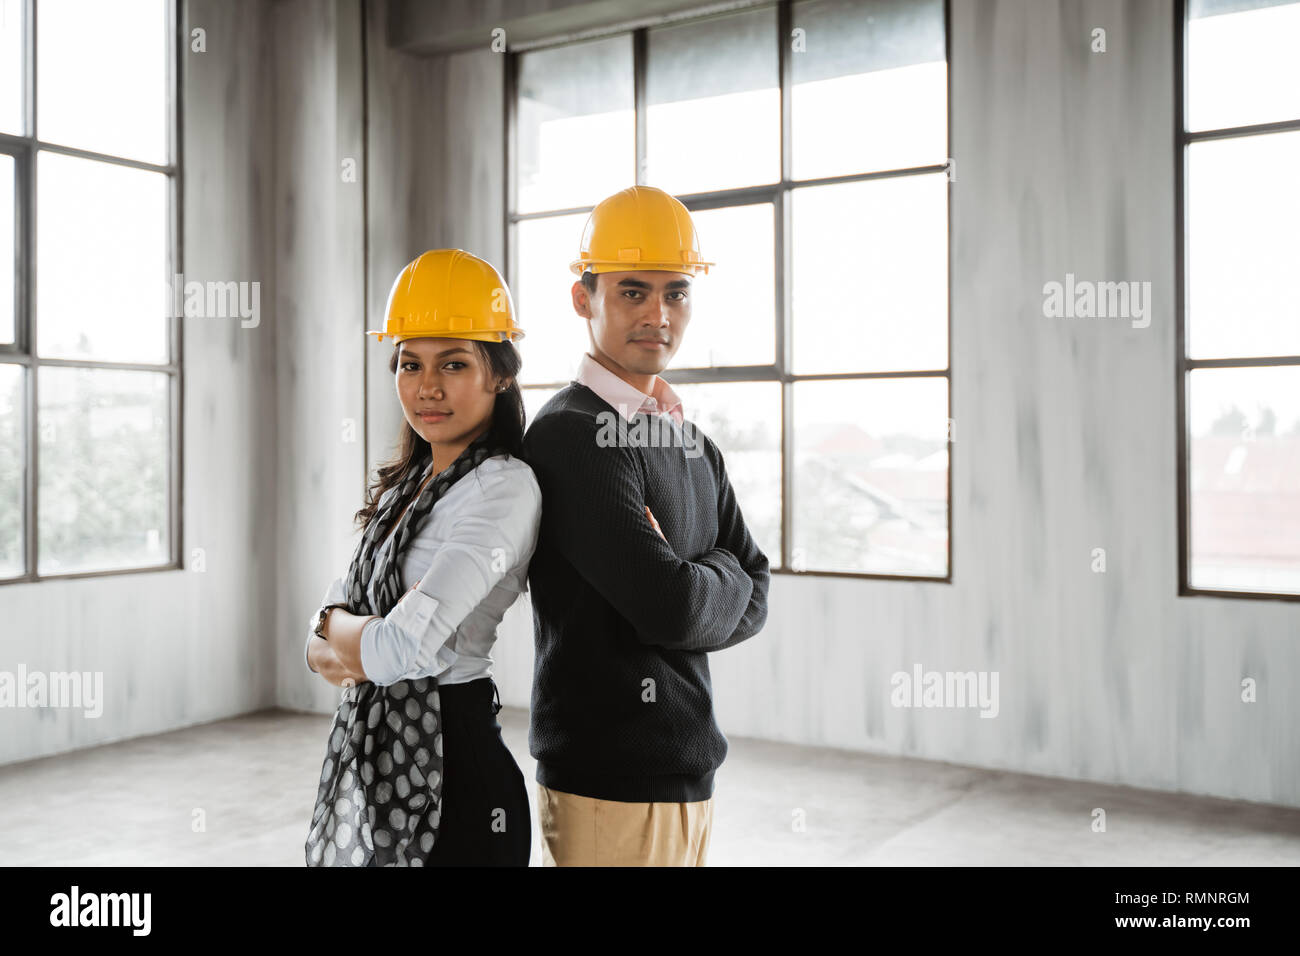 business team back to back crossed their arm and wearing hardhat looking at camera - Stock Image